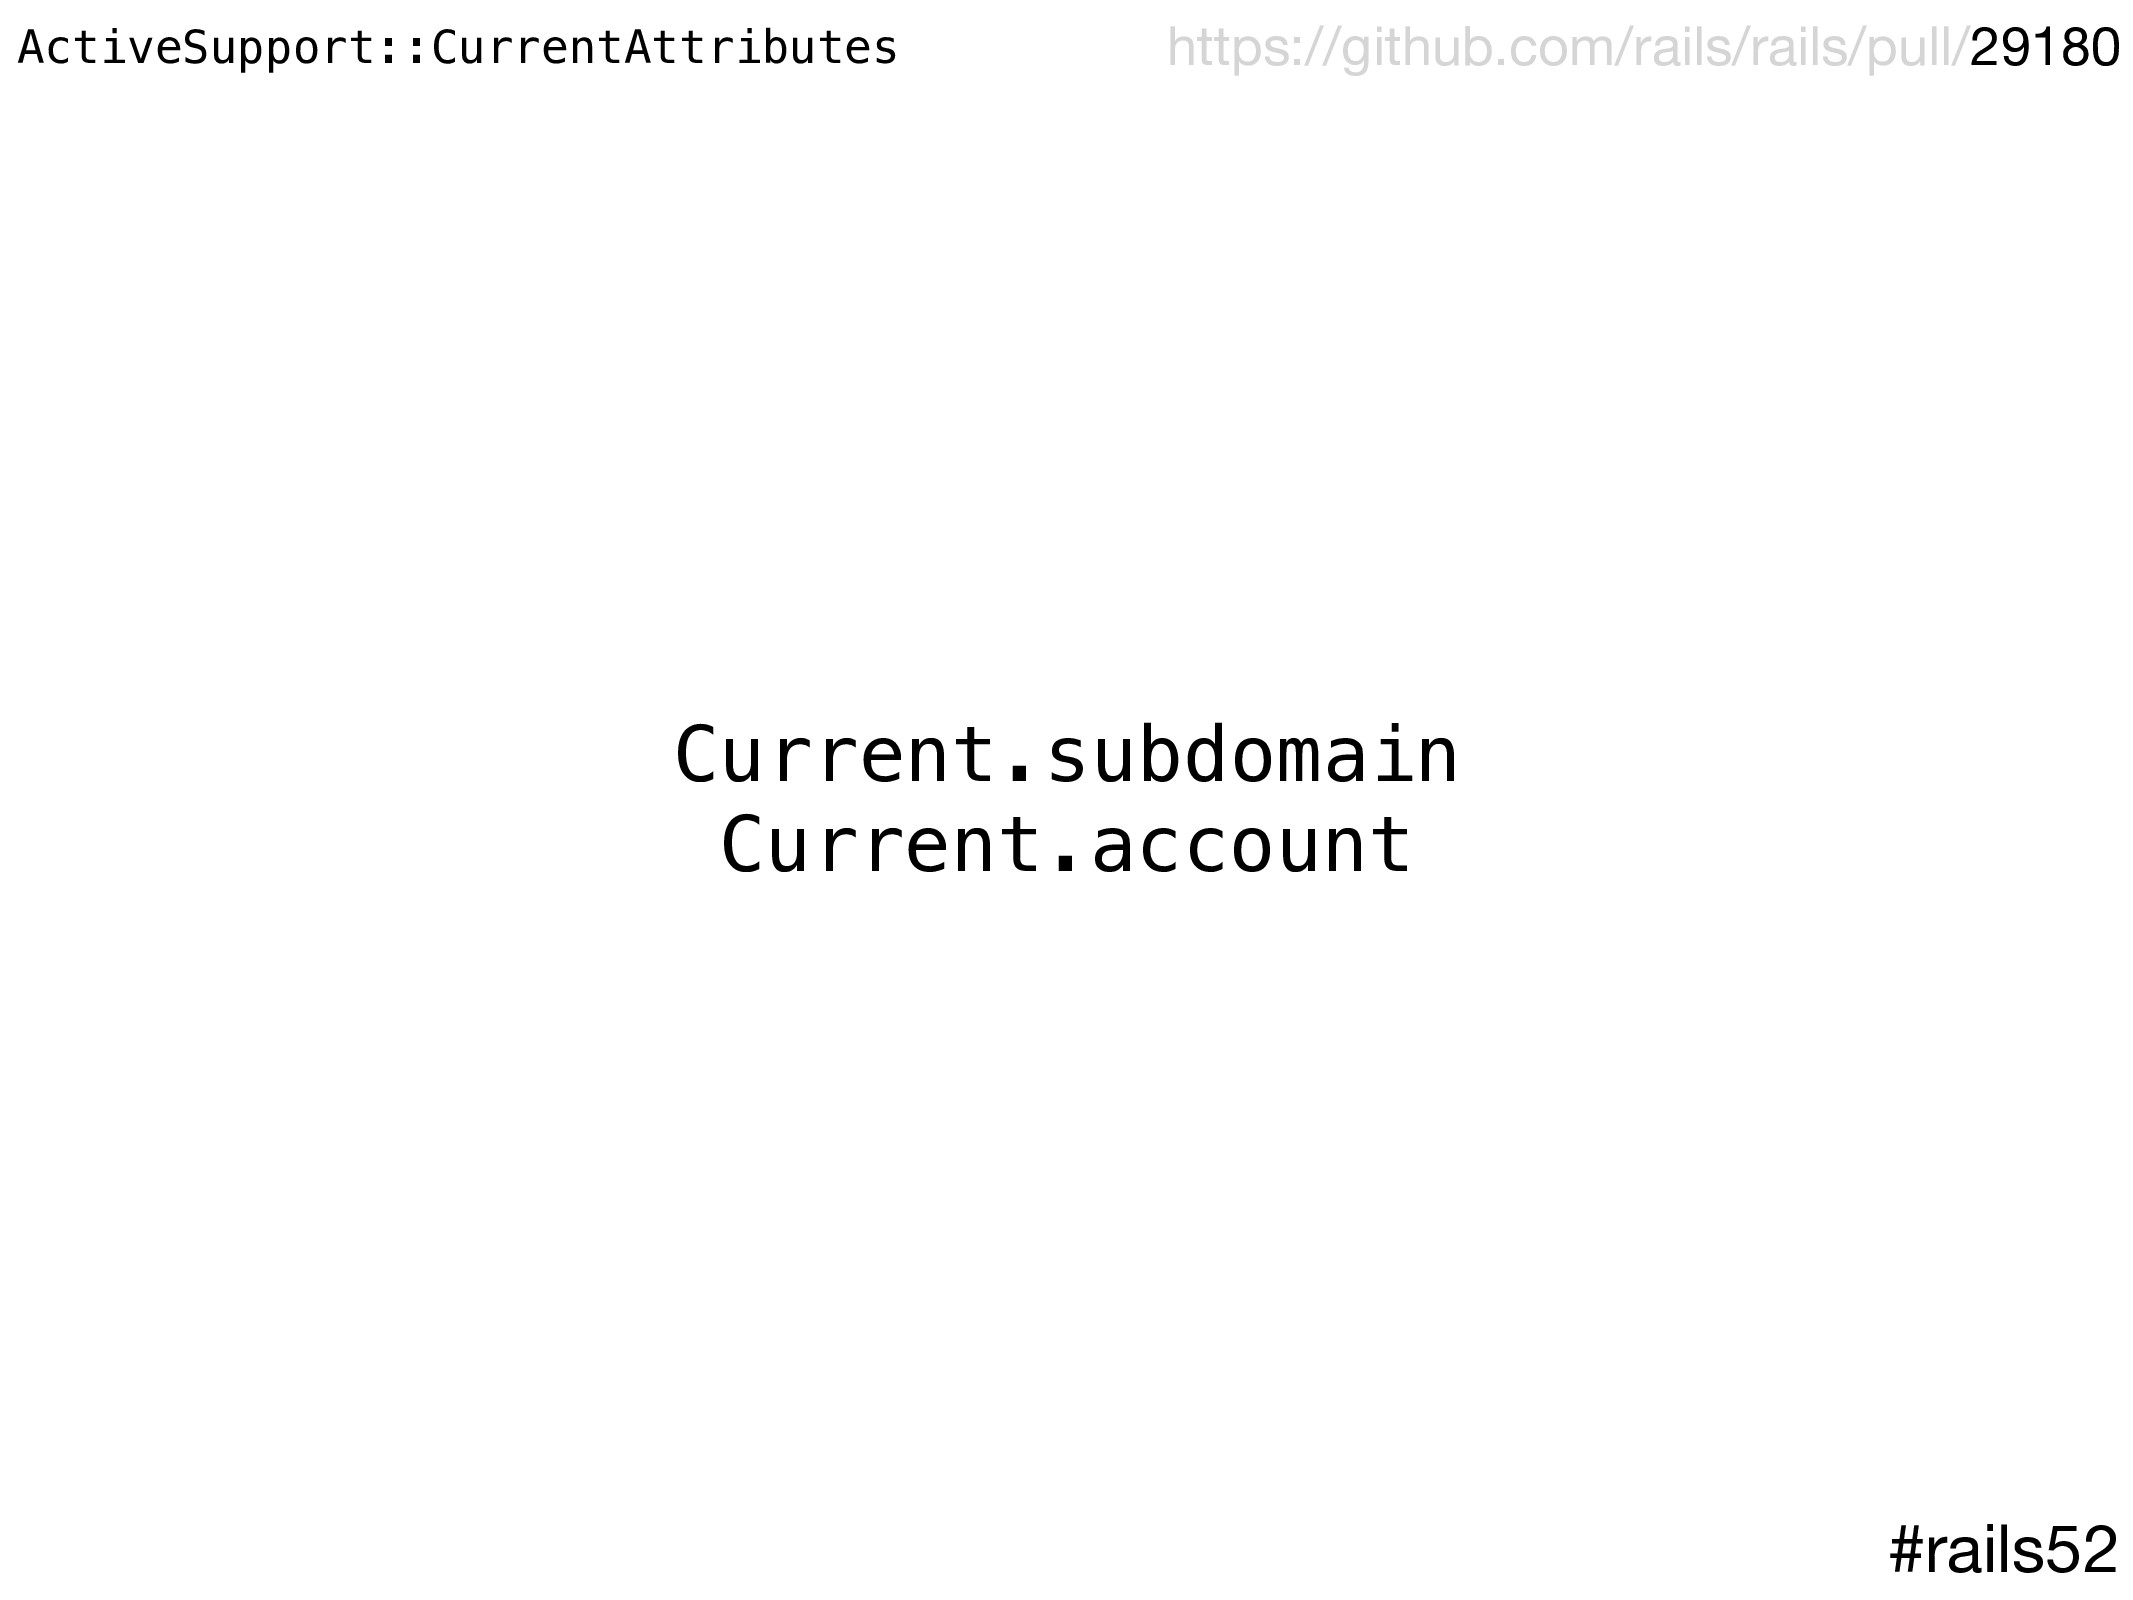 Current.subdomain Current.account #rails52 http...